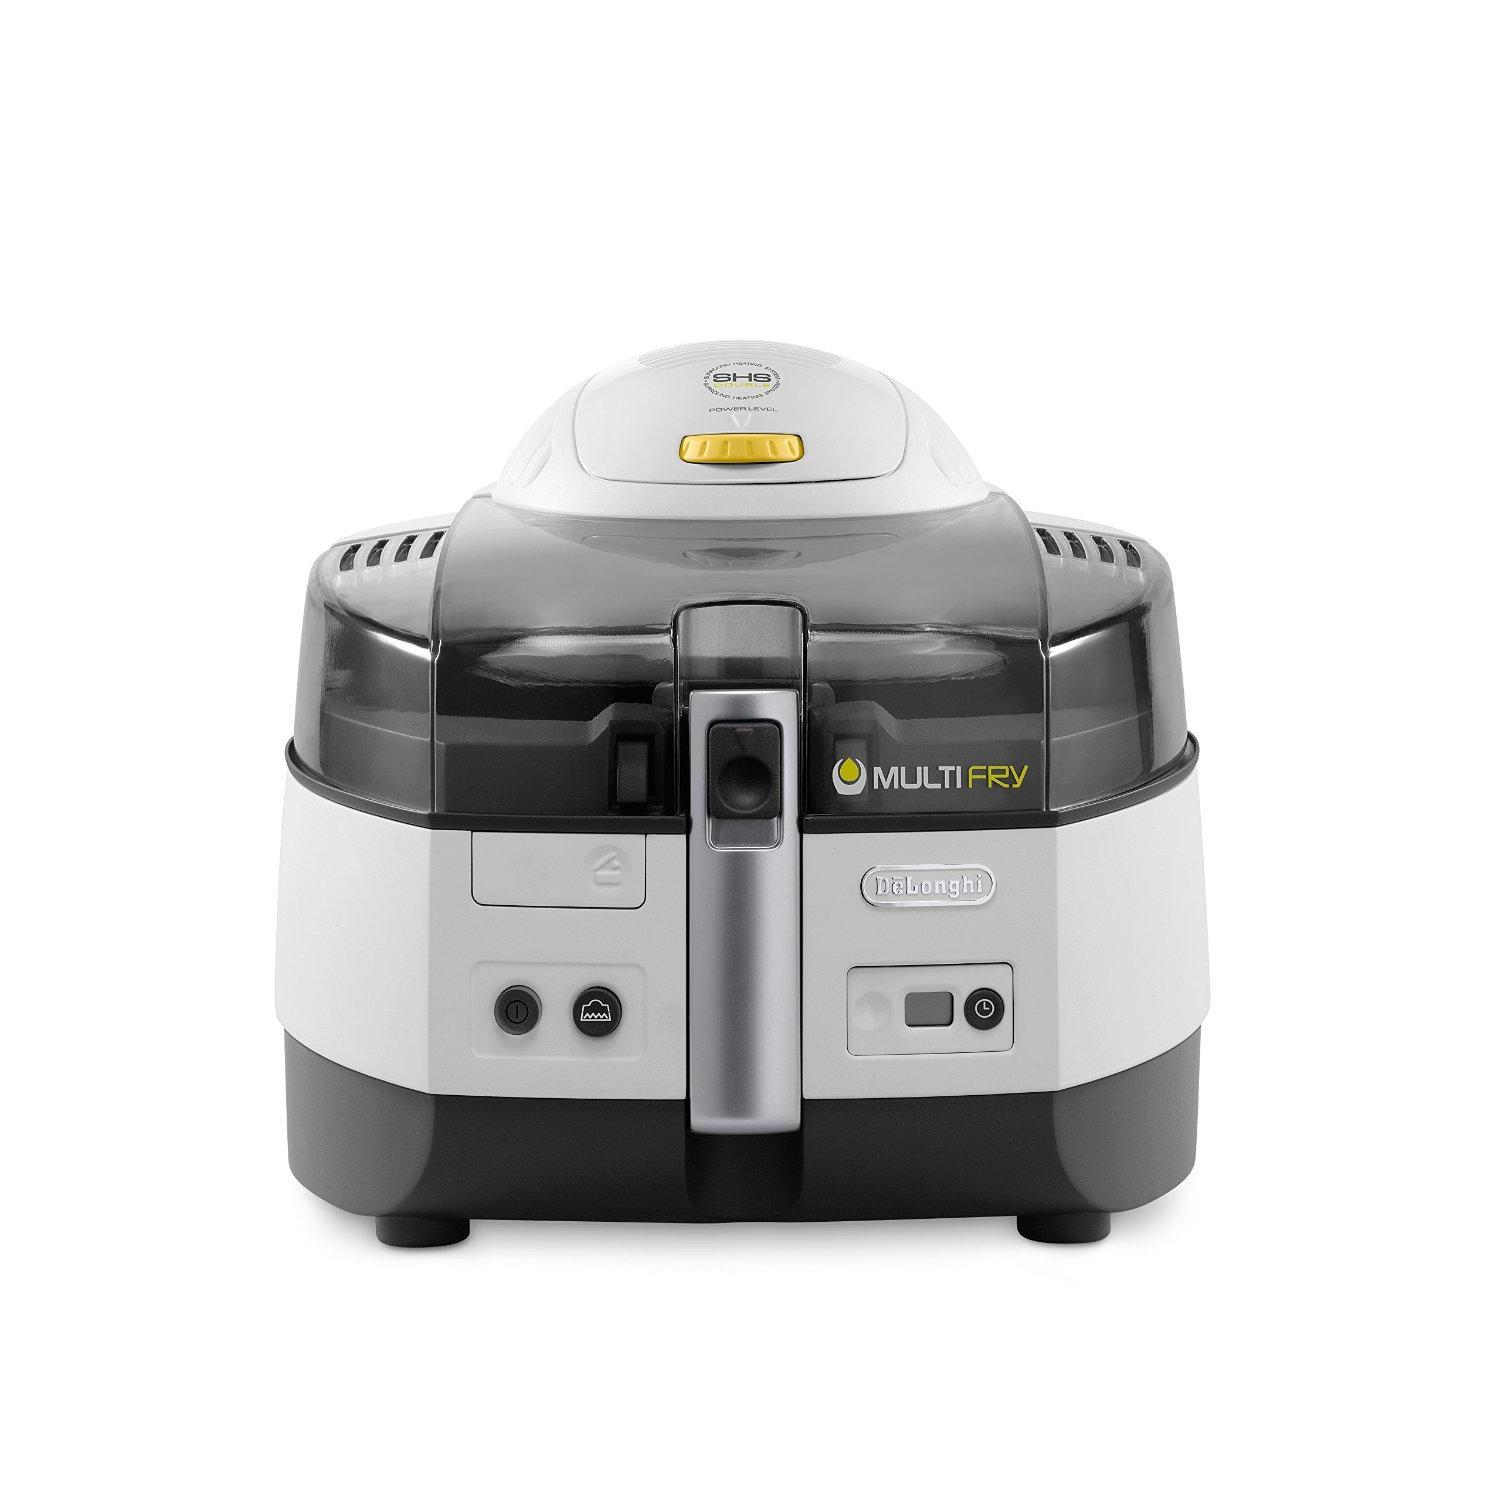 Delonghi - FH1363 - Friteuse multifry extra